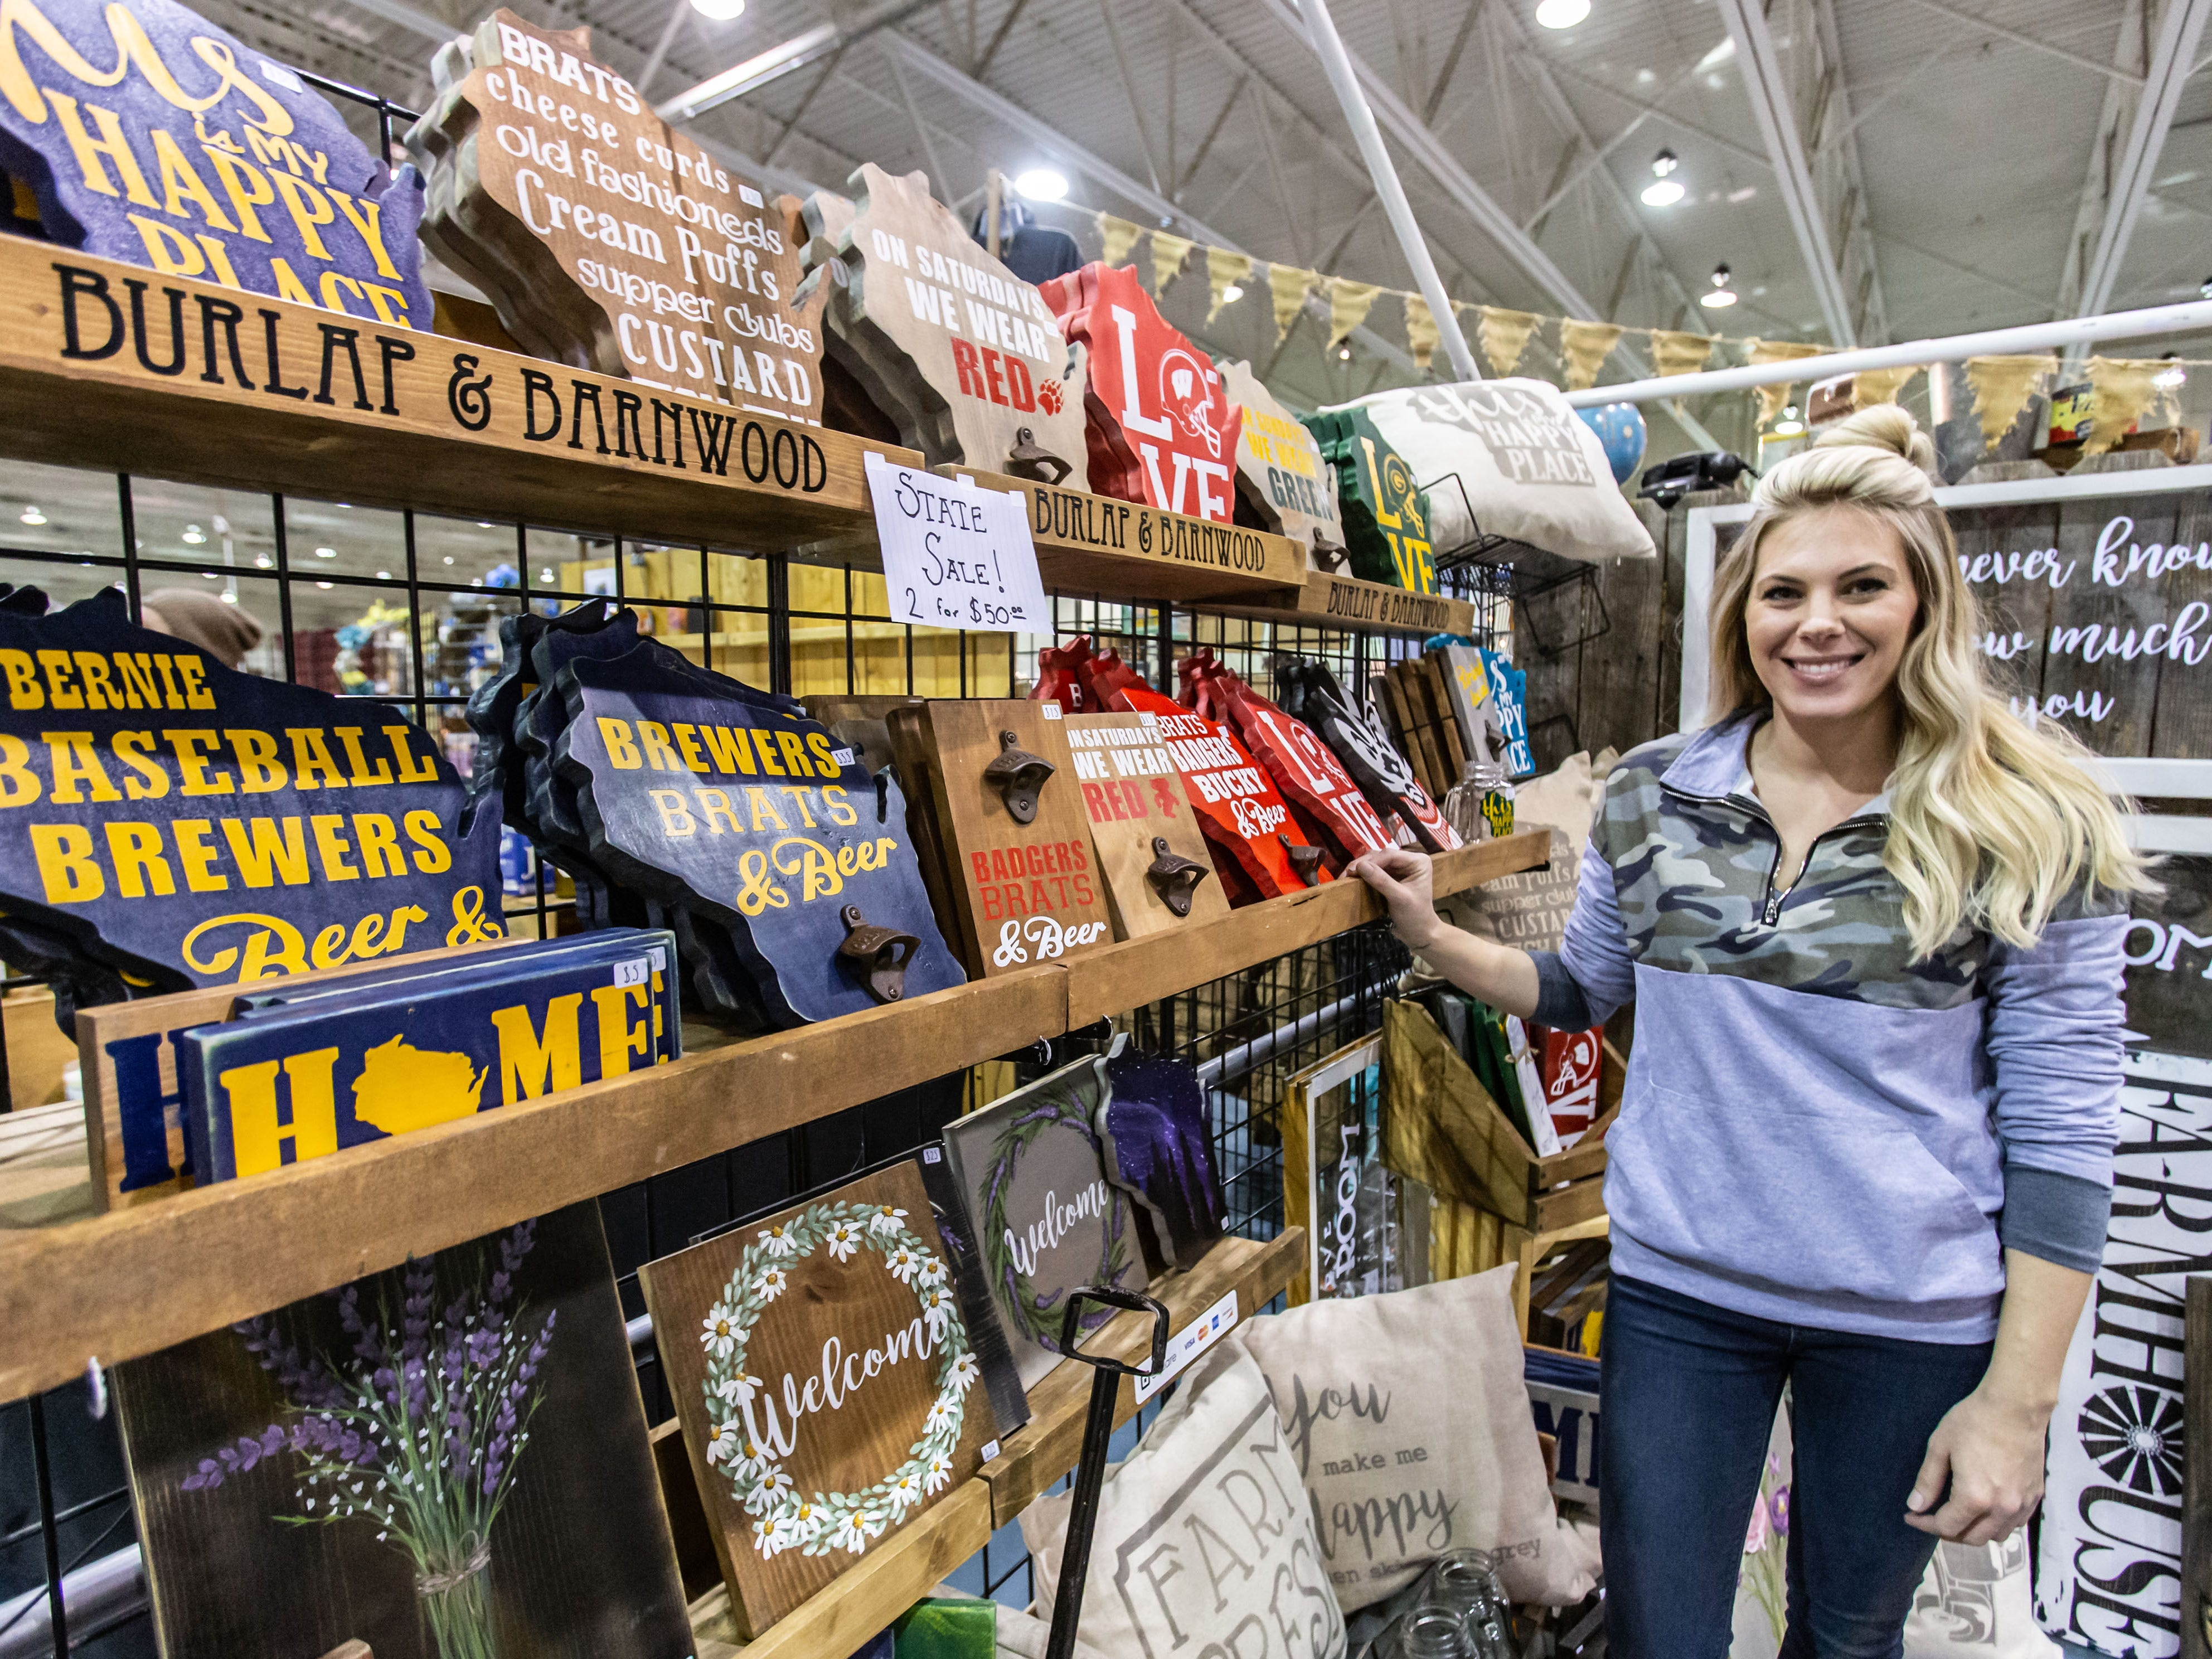 Amanda Massman of Burlap & Barnwood in Oconomowoc offers unique handmade home decor during the re:Craft and Relic show at the Milwaukee County Sports Complex in Franklin on Sunday, Jan. 27, 2019. The show offers vintage, upcycled, antique, handcrafted, reclaimed, and locally-sourced goods.